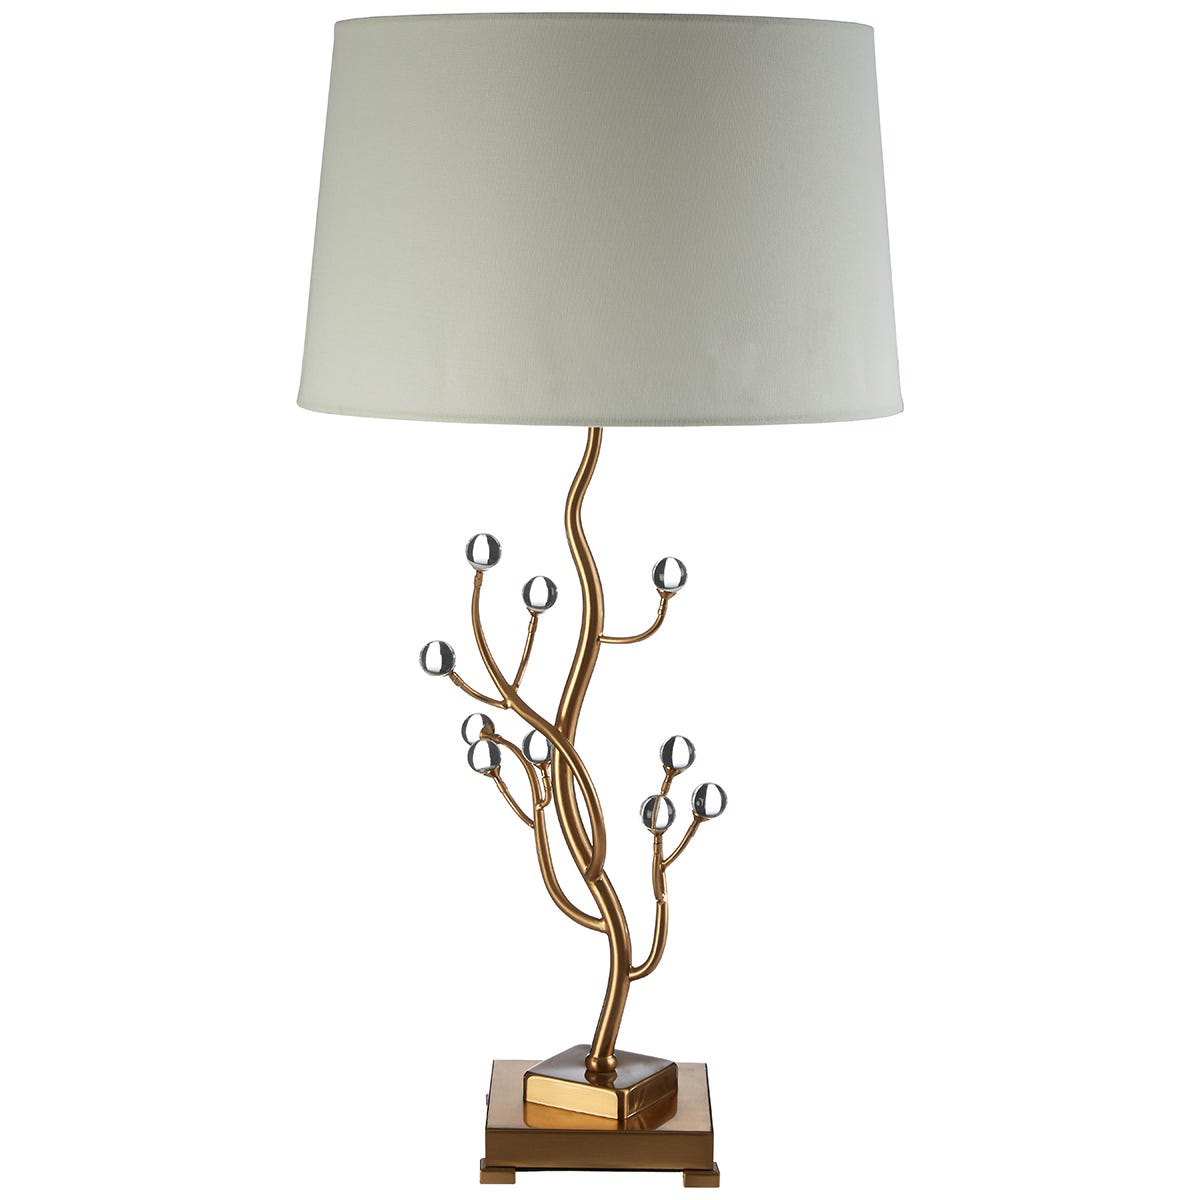 Premier Housewares Zeva Table Lamp in Crystal/Gold Finish with White Linen Shade